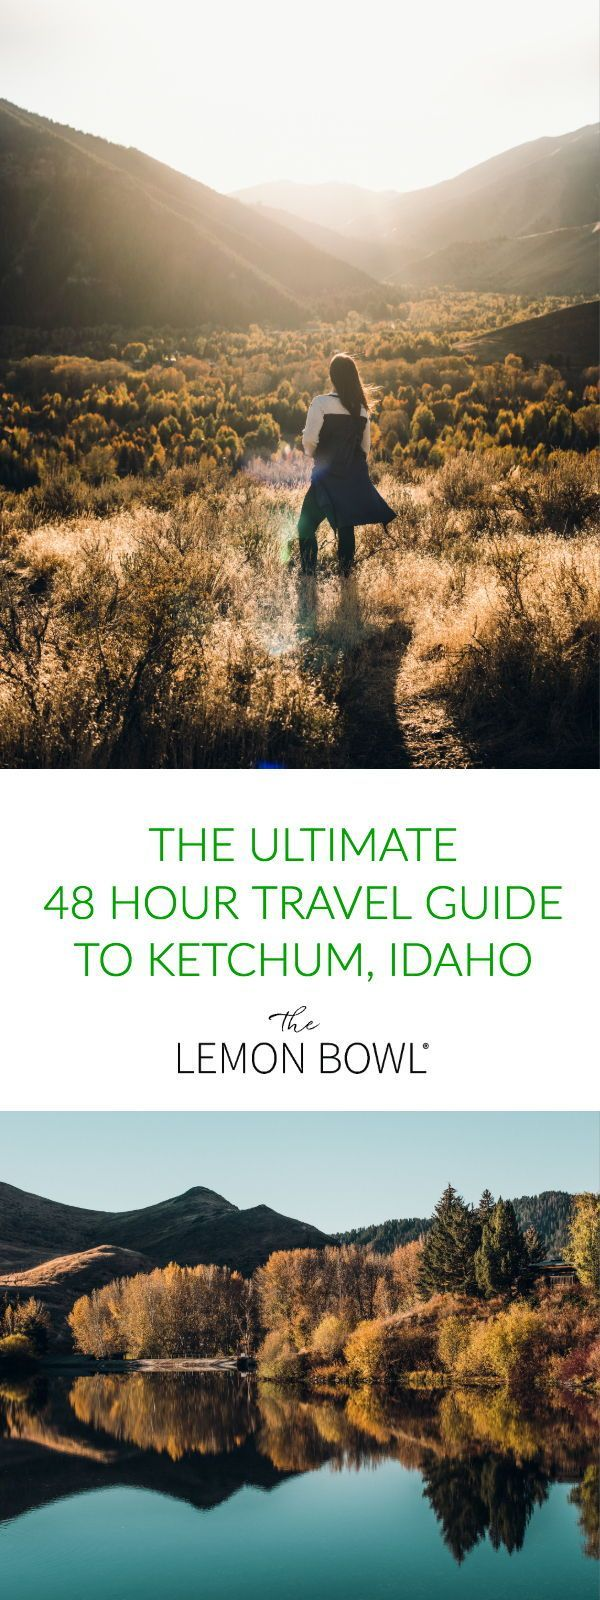 The Final 48 Hour Journey Information to Ketchum, Idaho